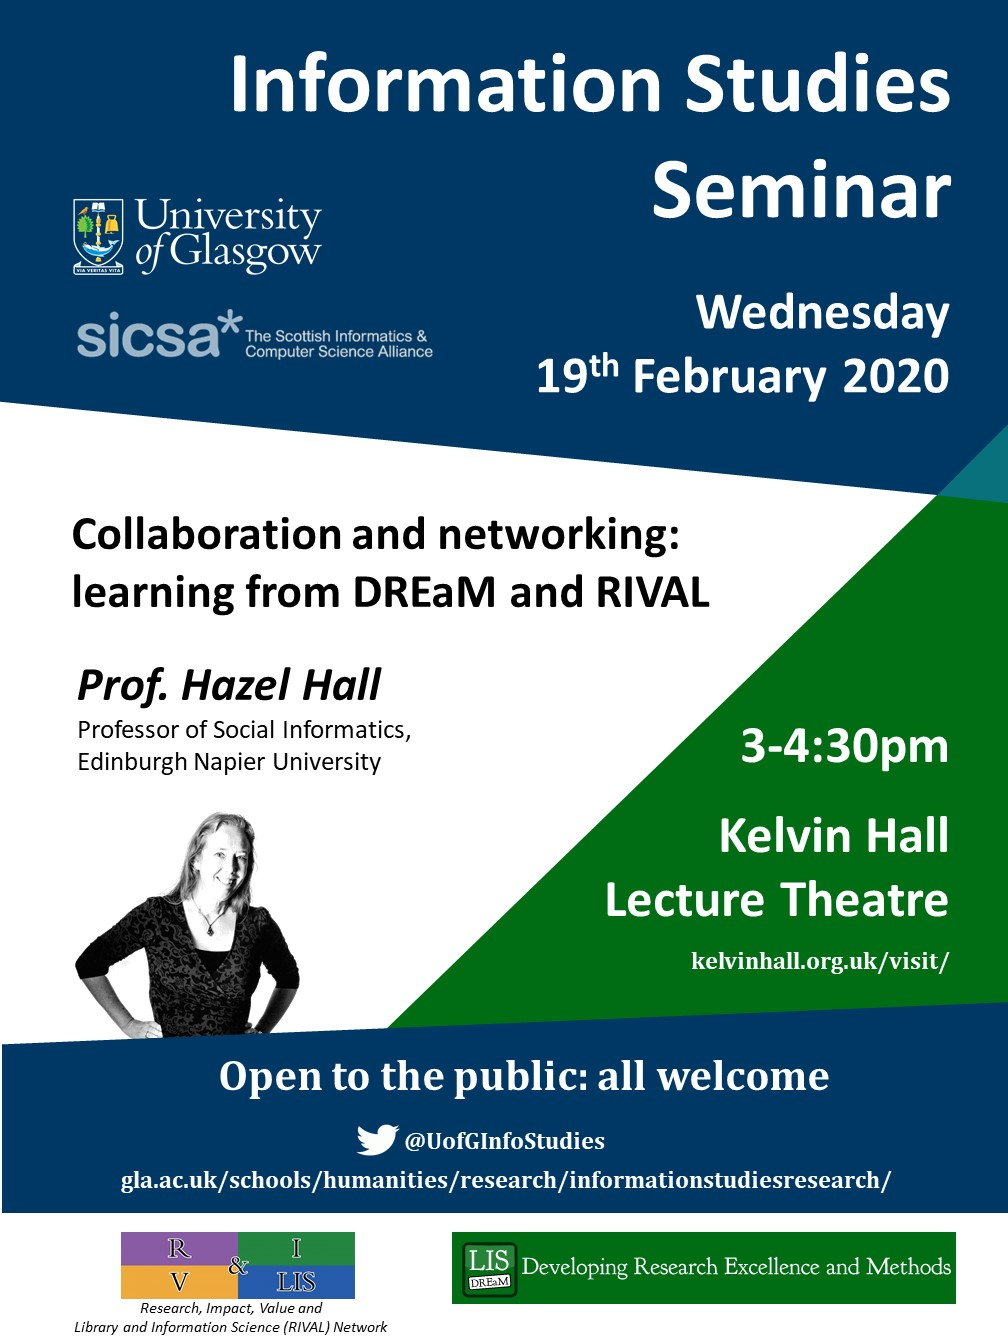 Prof. Hazel Hall - full poster